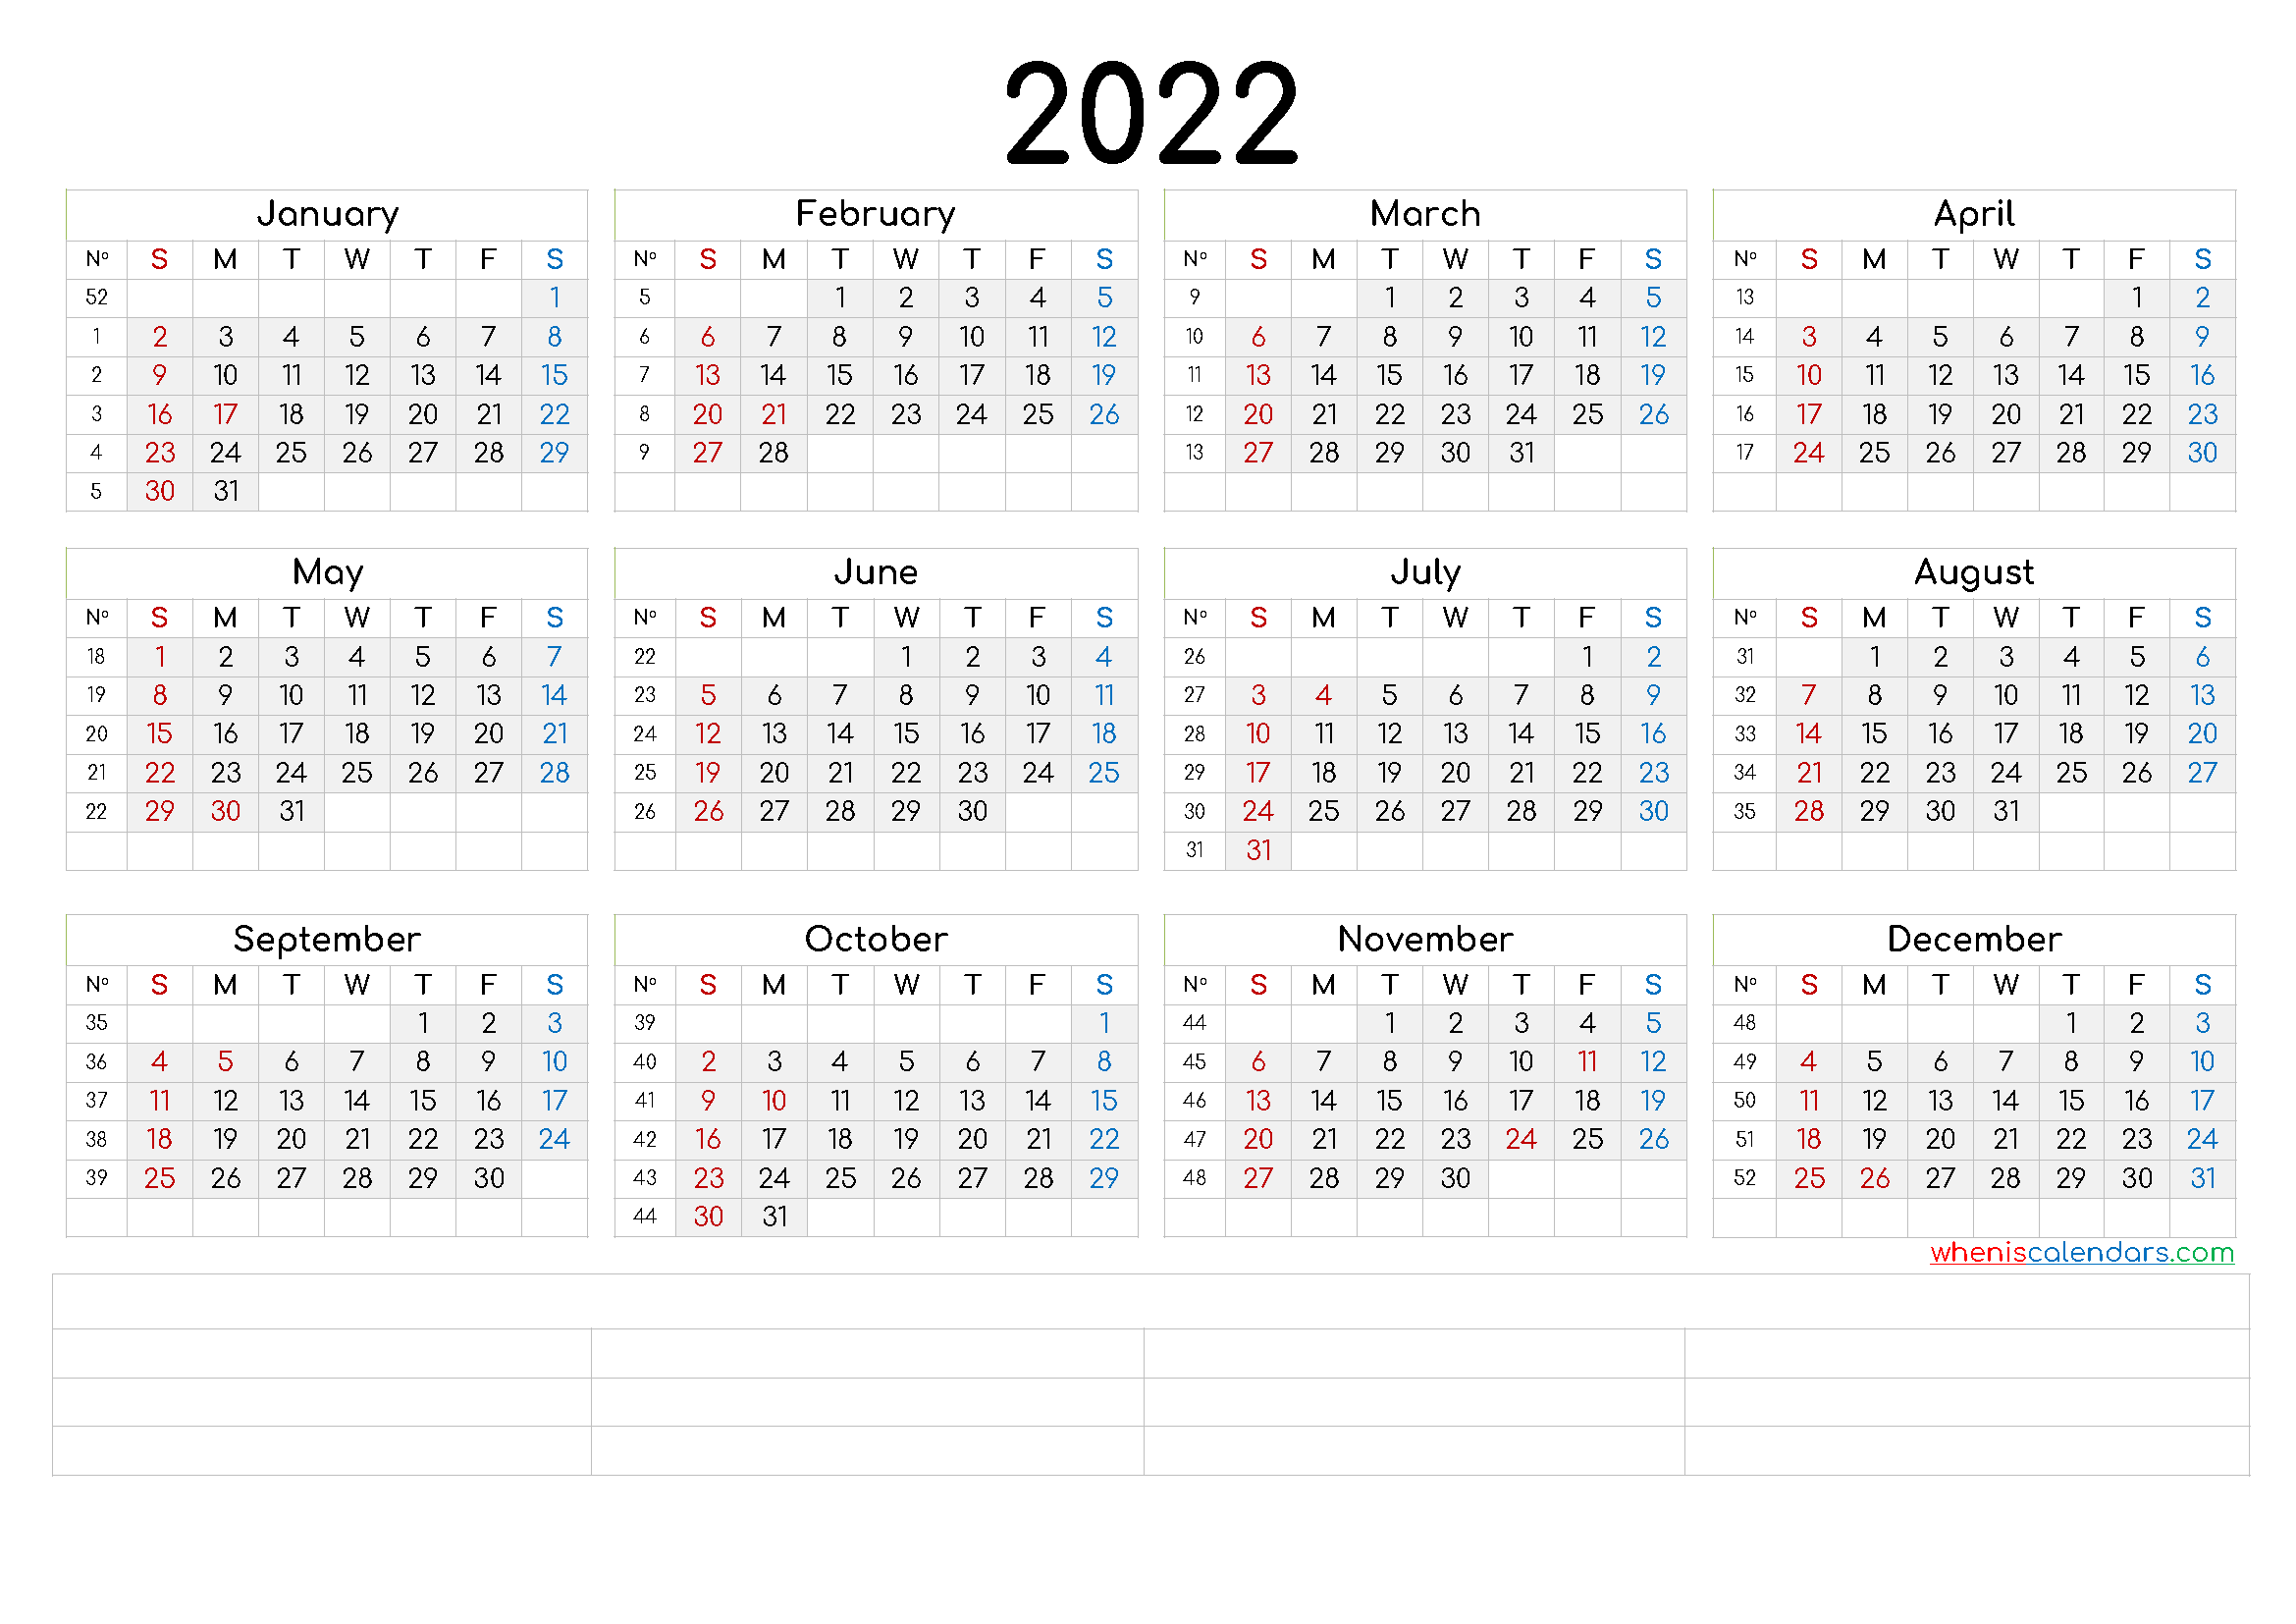 2022 Annual Calendar Printable (6 Templates) - Free ...